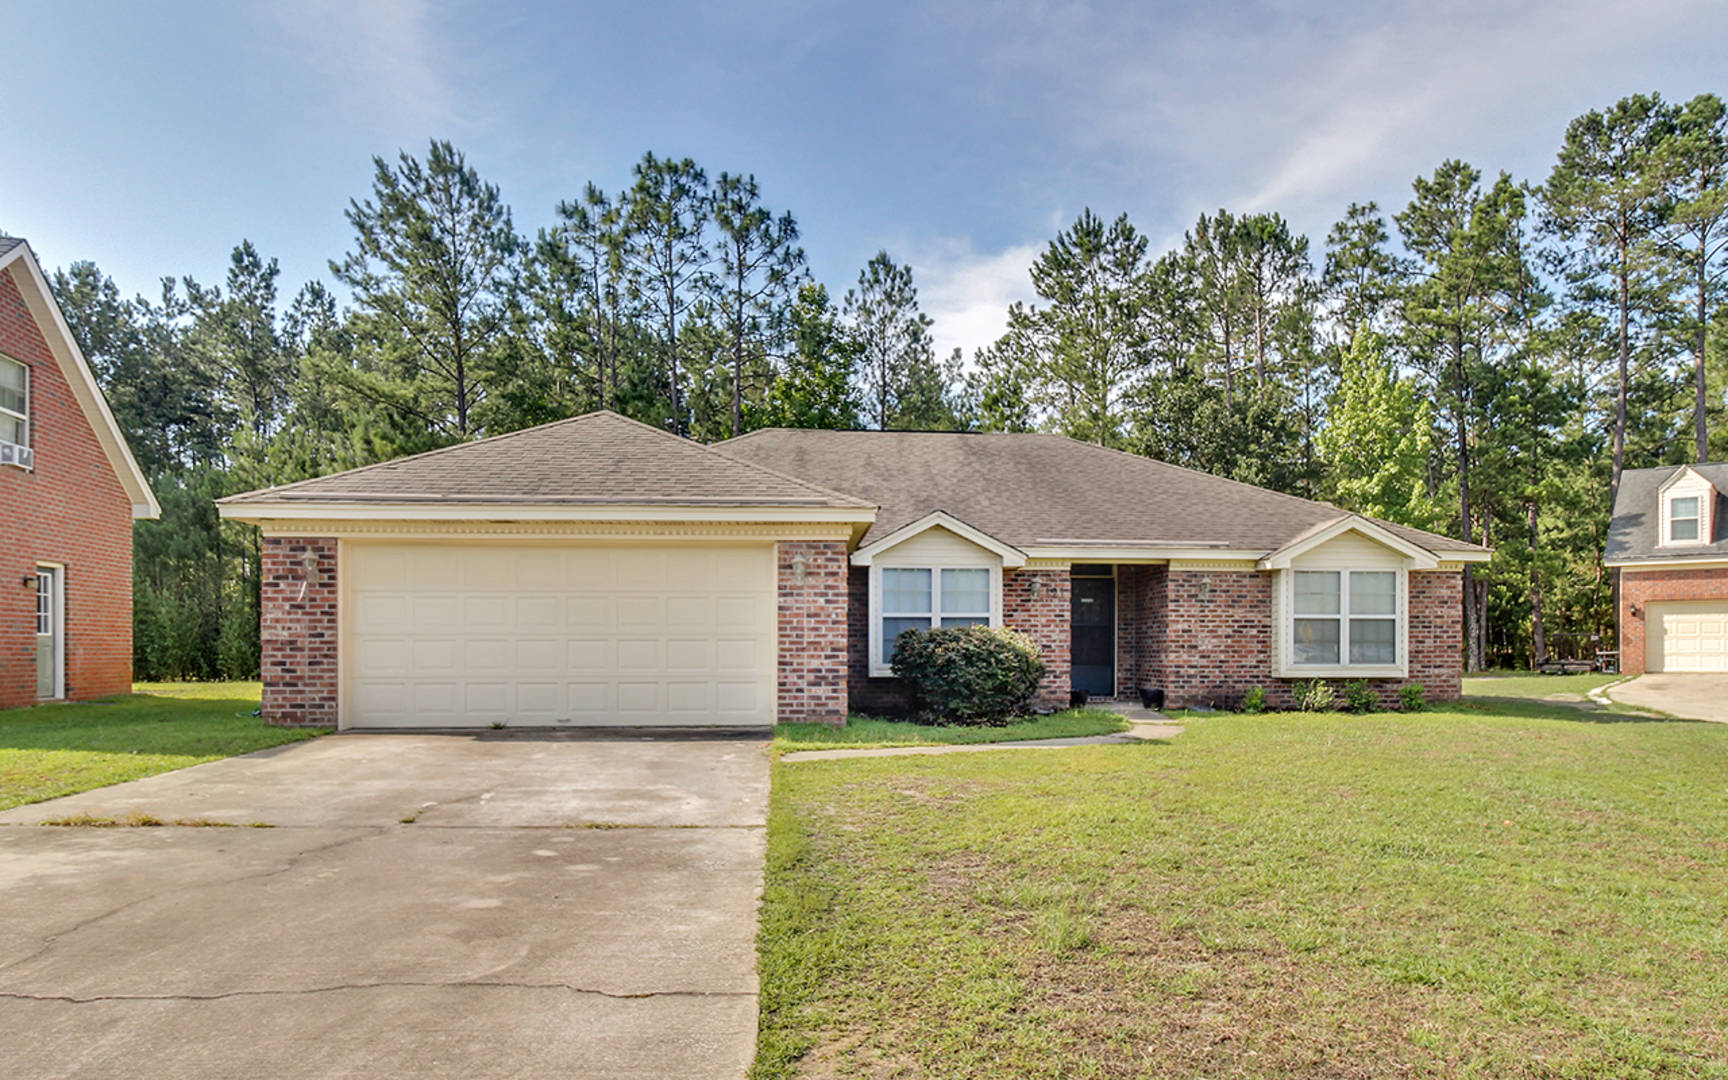 121 Morgan Pines Dr Pooler, GA 31322